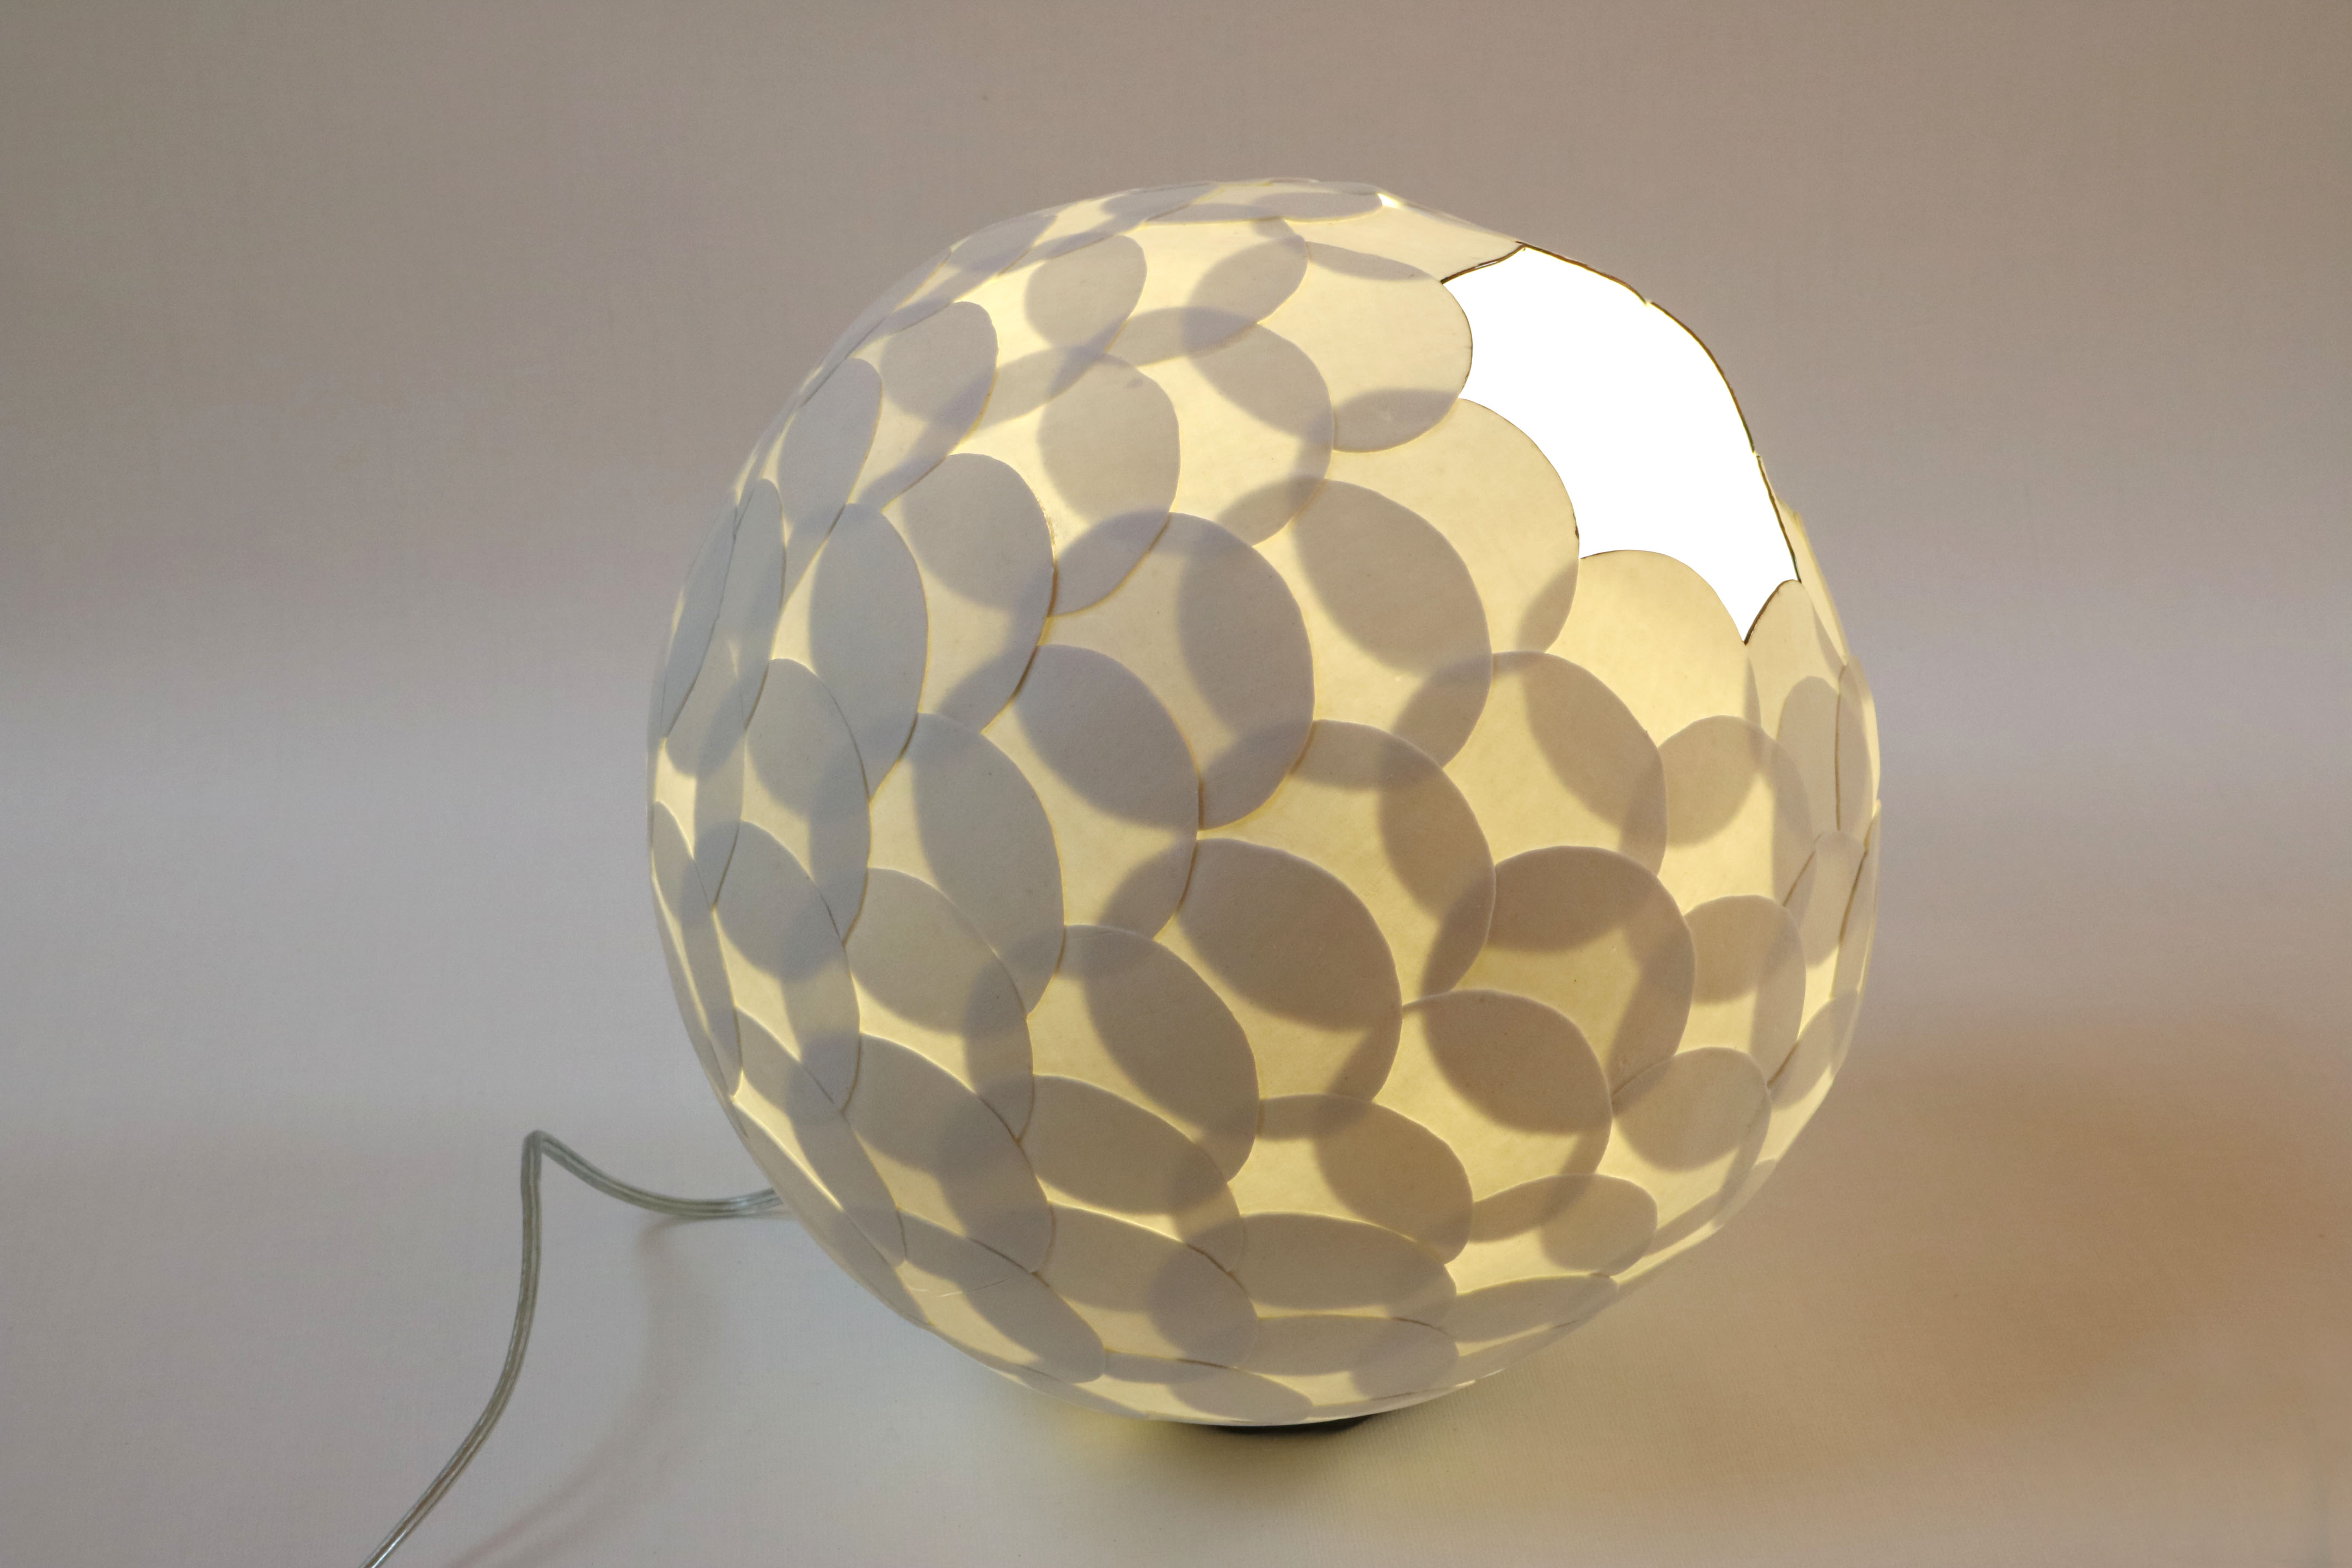 Translucent Porcelain Sphere